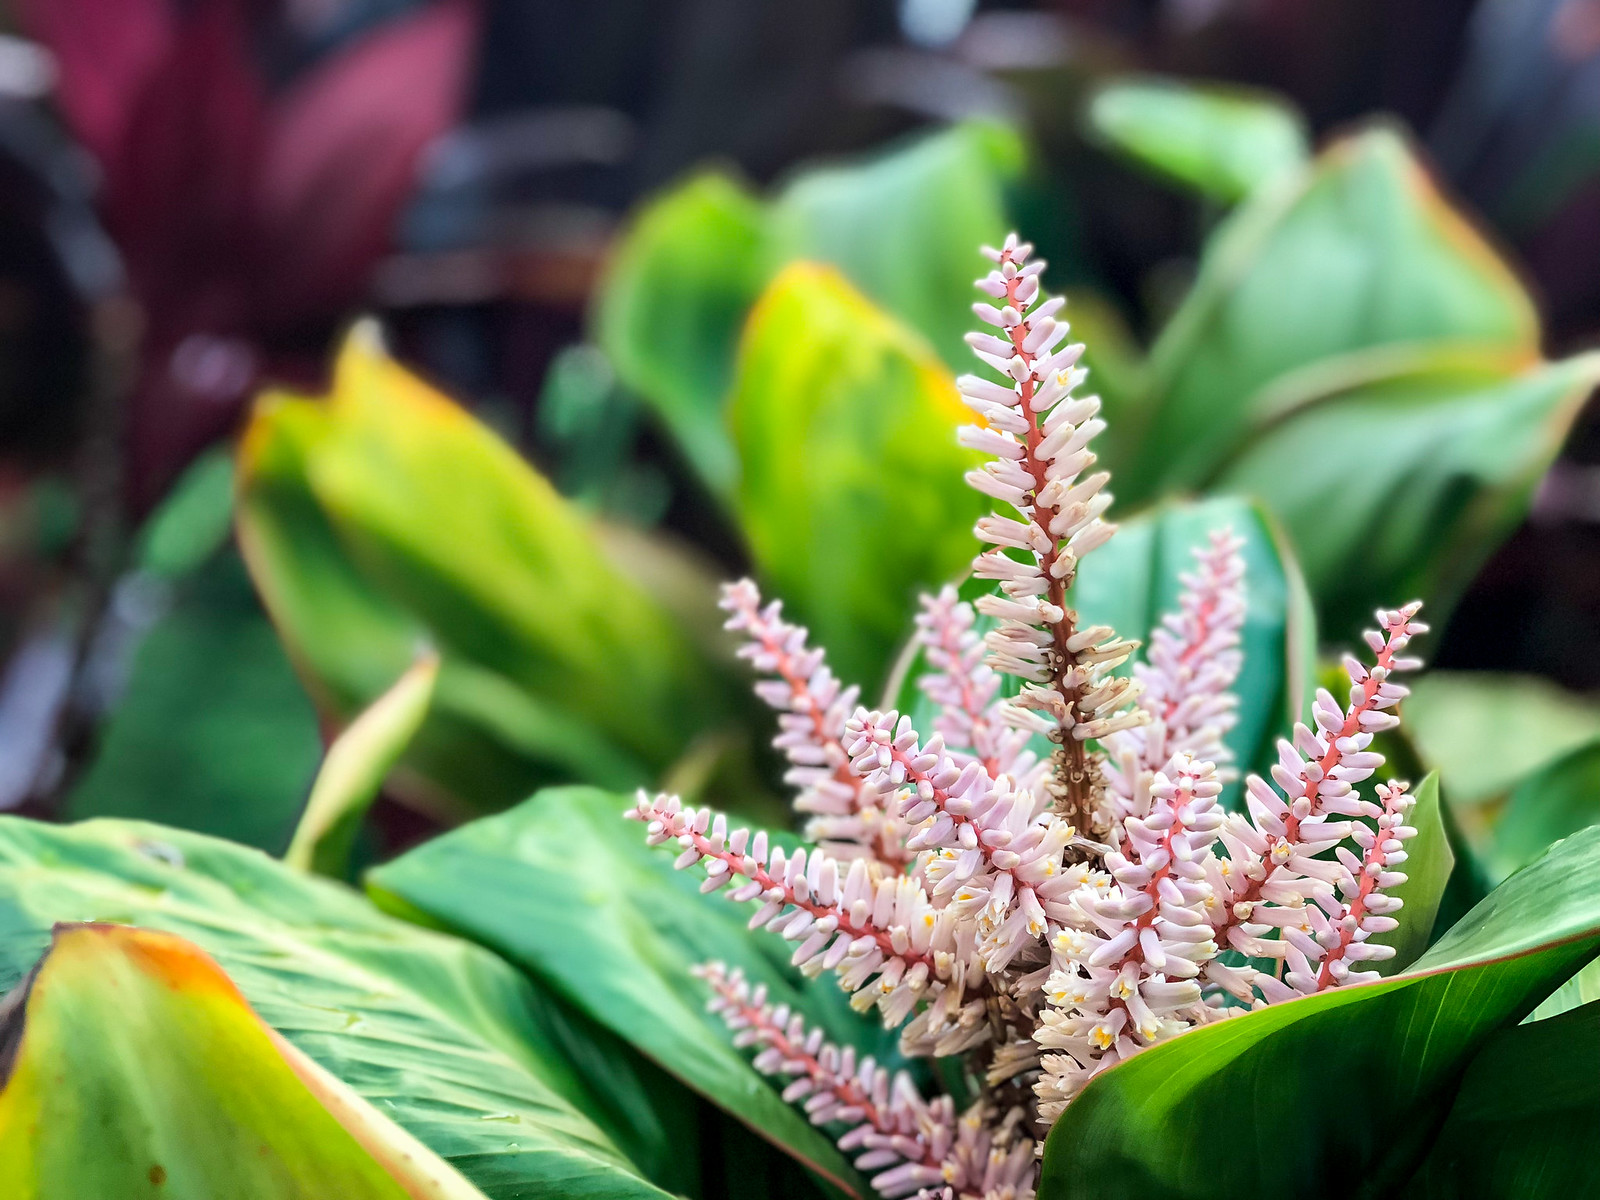 there are tropical flowers everywhere you look